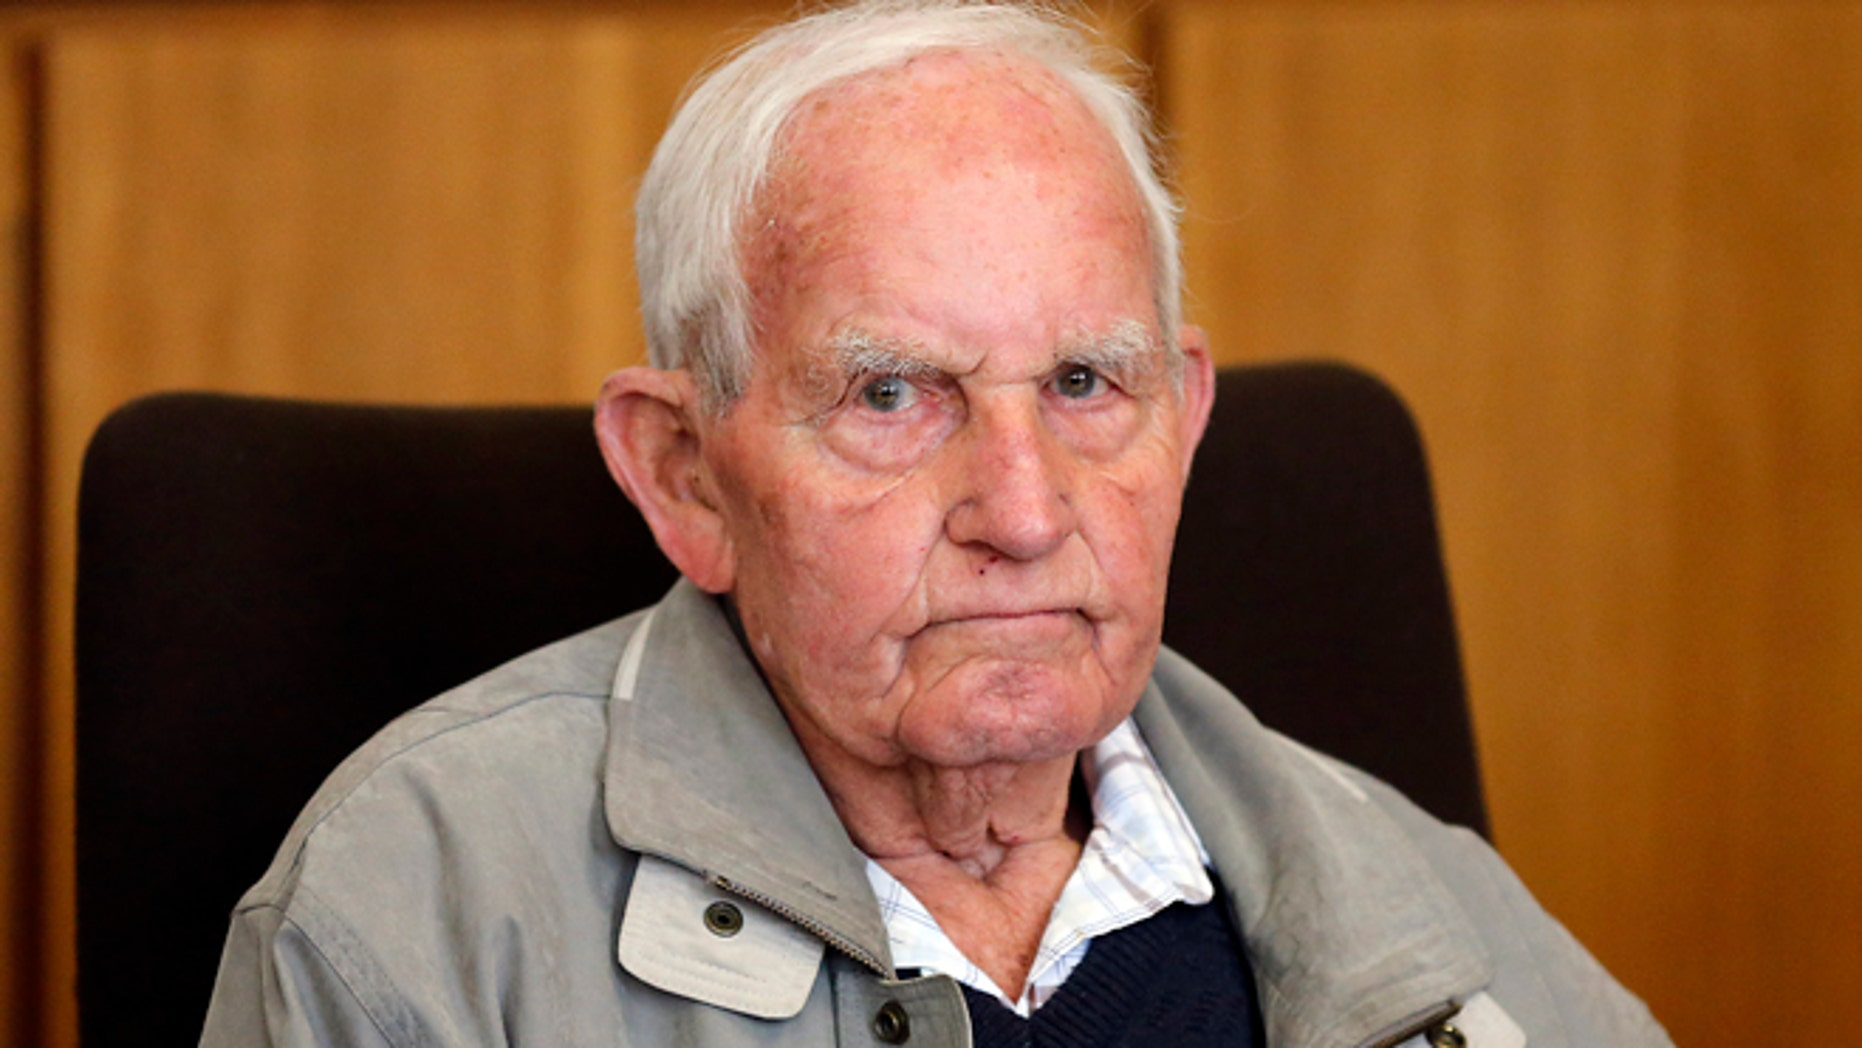 Sept. 2, 2013: Siert Bruins , 92-year-old former member of the Nazi  Waffen SS, sits in the courtroom of the court in Hagen, Germany.